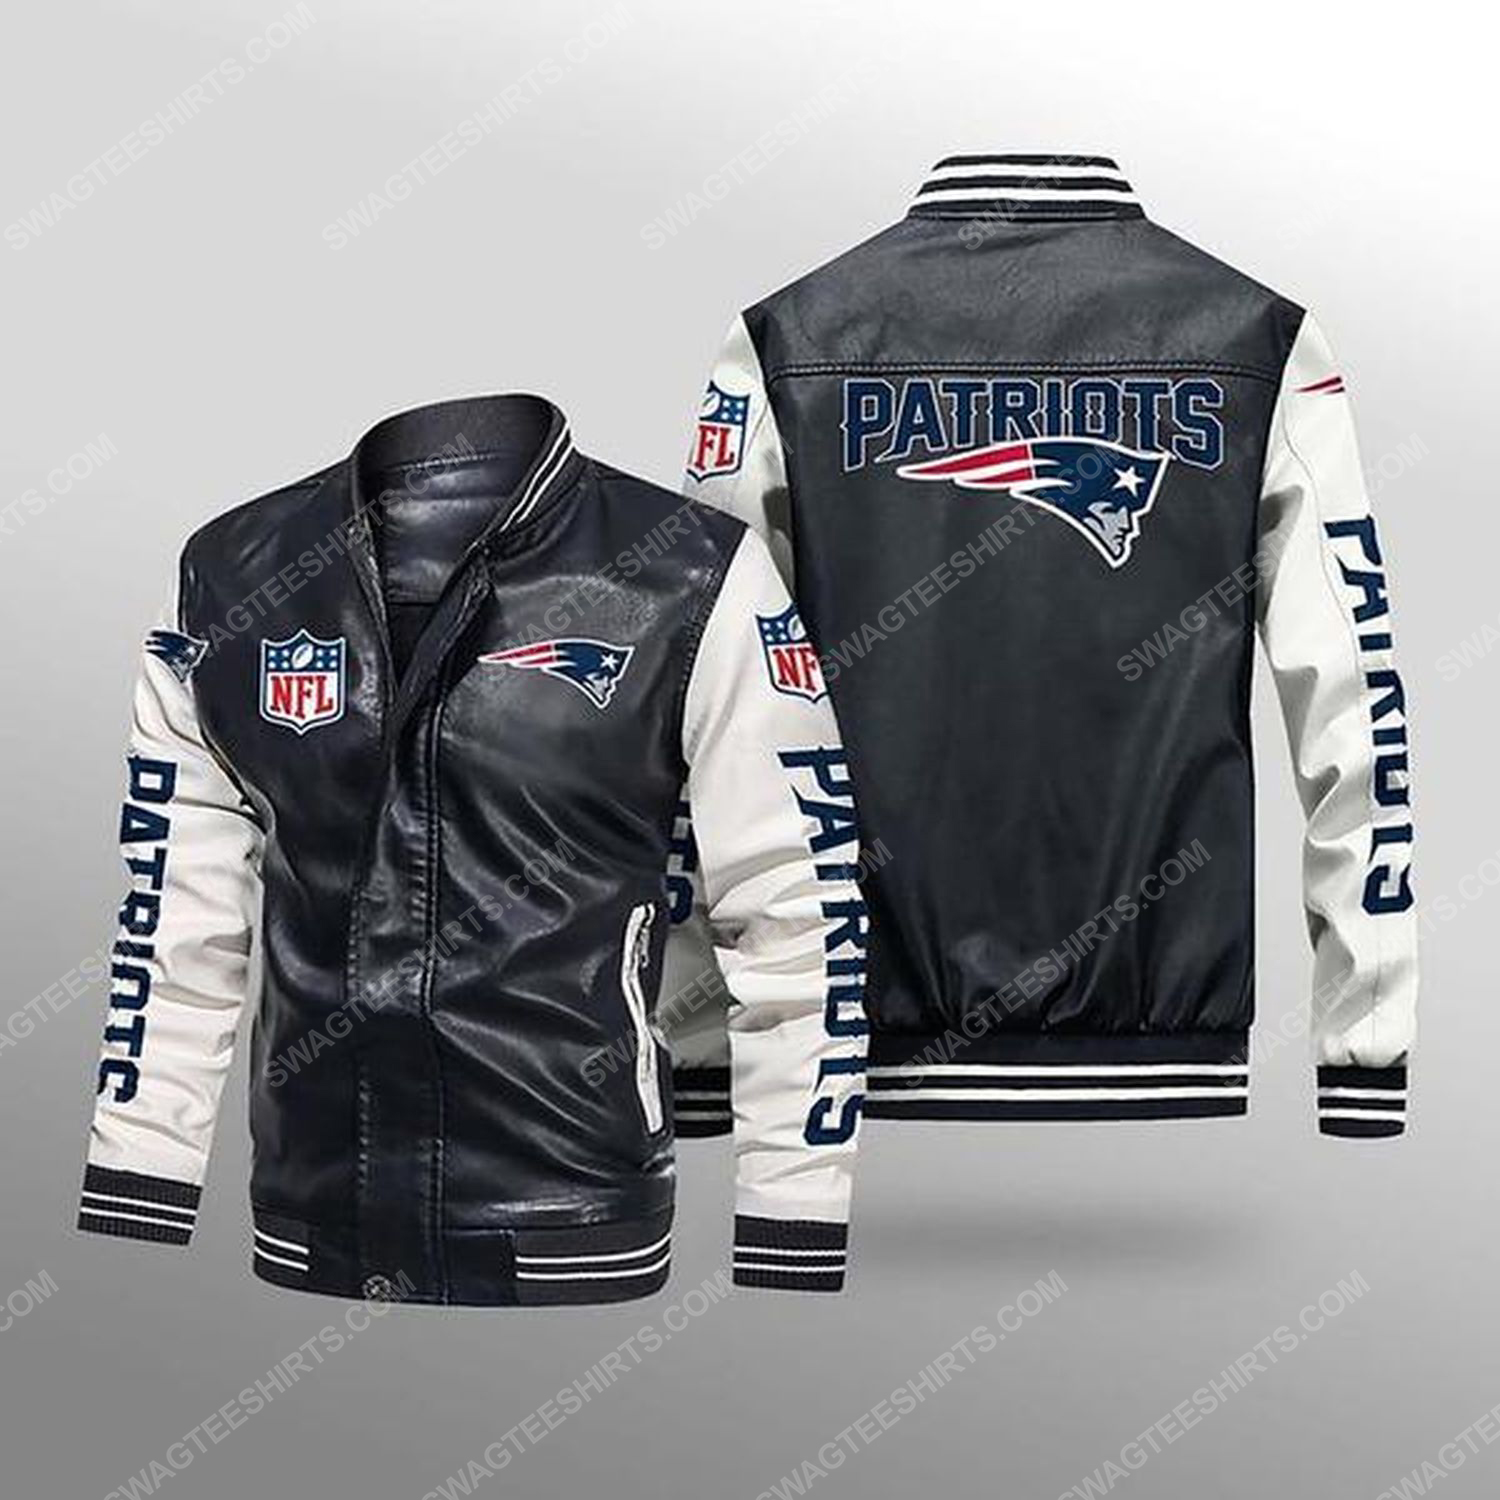 New england patriots all over print leather bomber jacket - white